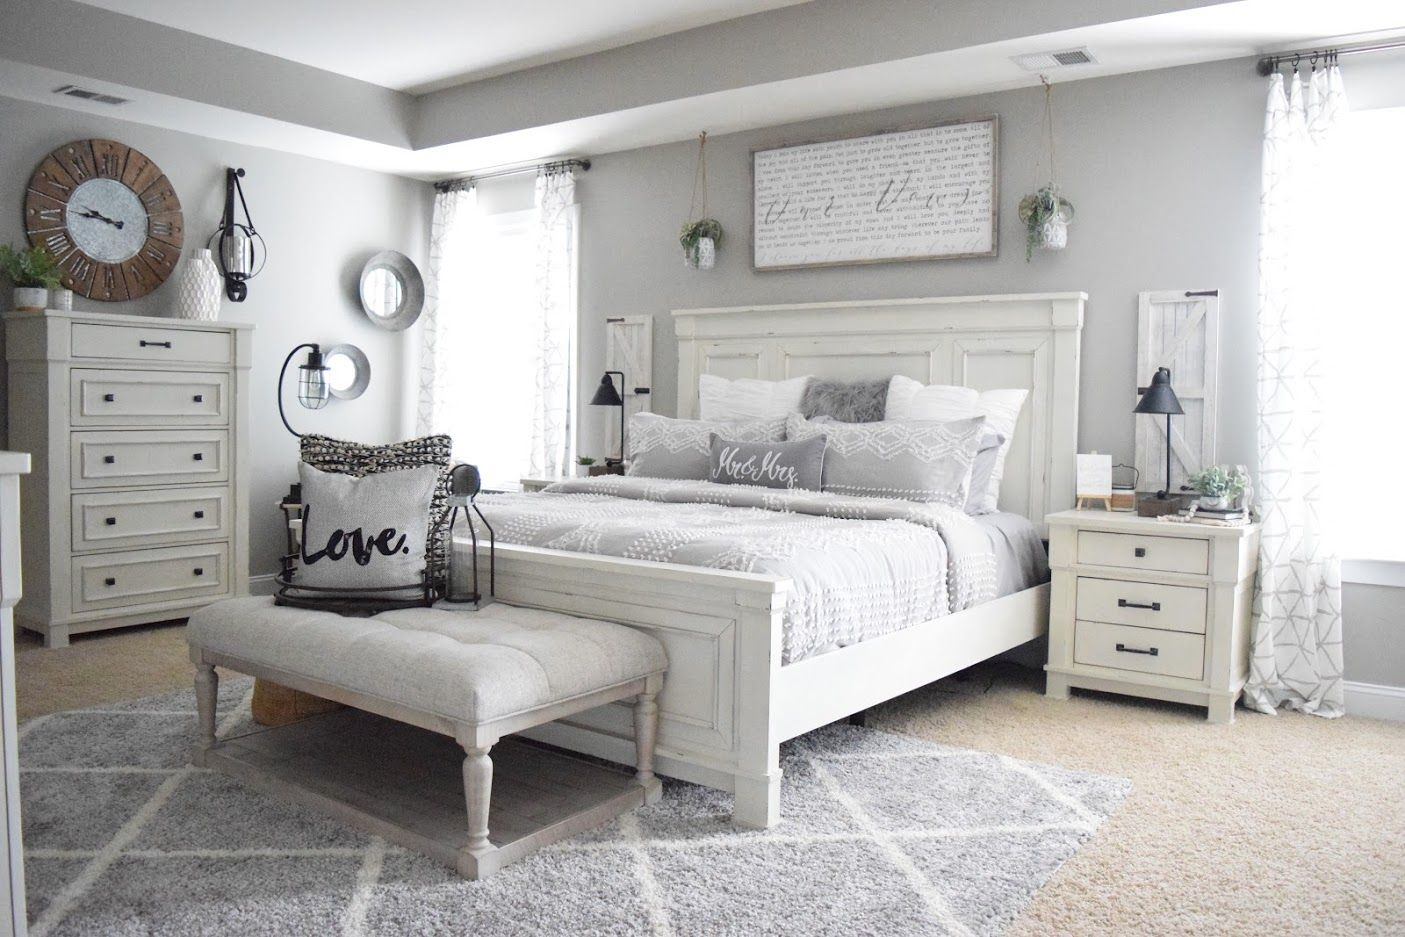 Robin Long Personalizes Master Bedroom With Love Ashley Homestore Master Bedroom Remodel Remodel Bedroom Farmhouse Style Master Bedroom